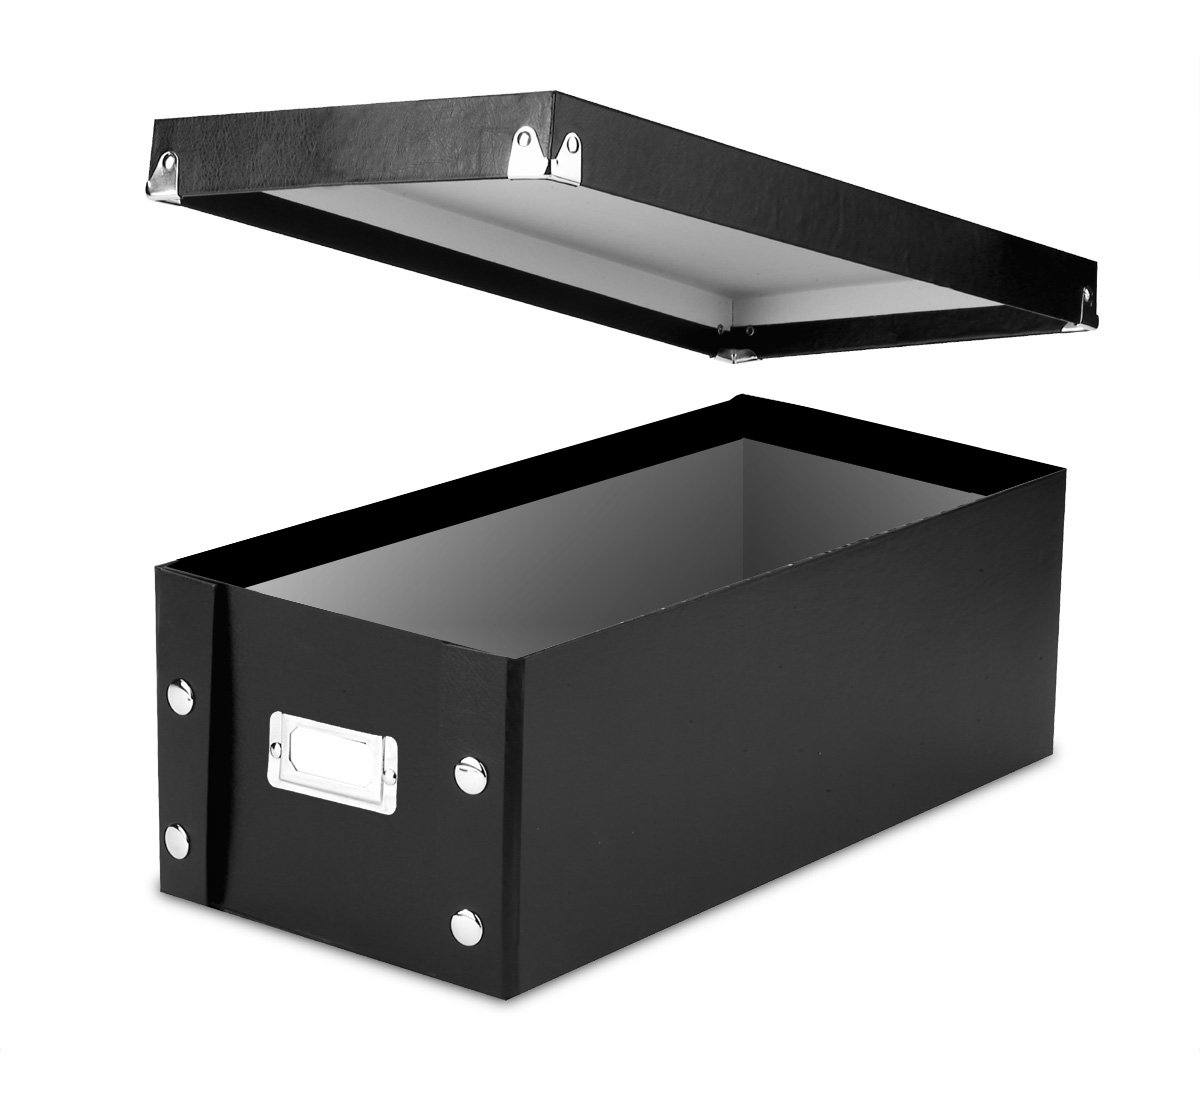 """Snap-N-Store DVD Storage Boxes, Set of 2 Boxes, Each 6"""" x 8.25"""" x 16.5"""" Inches, Holds up to 26 DVDs in Cases, Black (SNS01618)"""